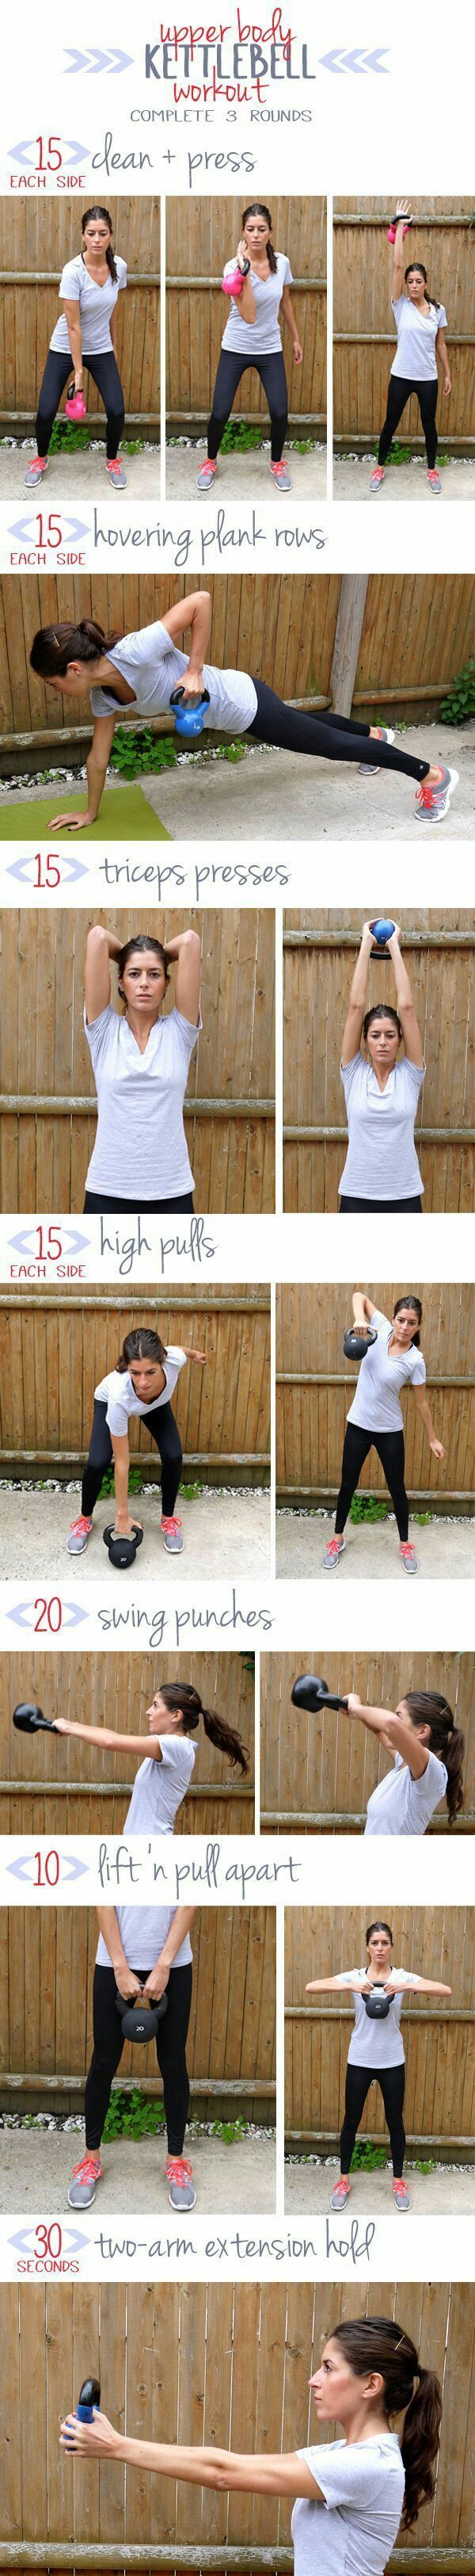 Simple Kettle bell exercise...